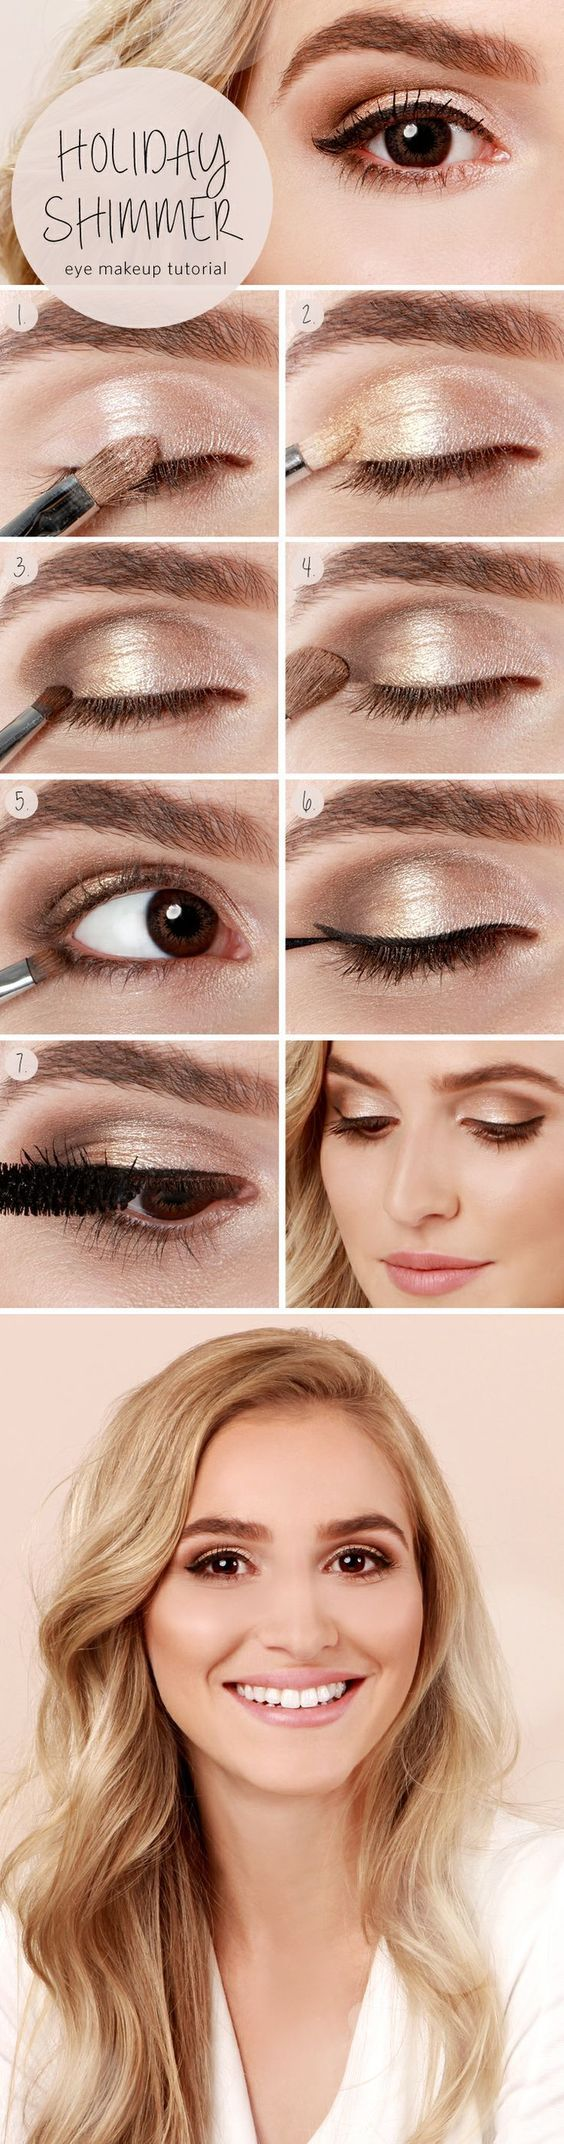 Makeup tips and tricks: How to apply makeup to hide ...